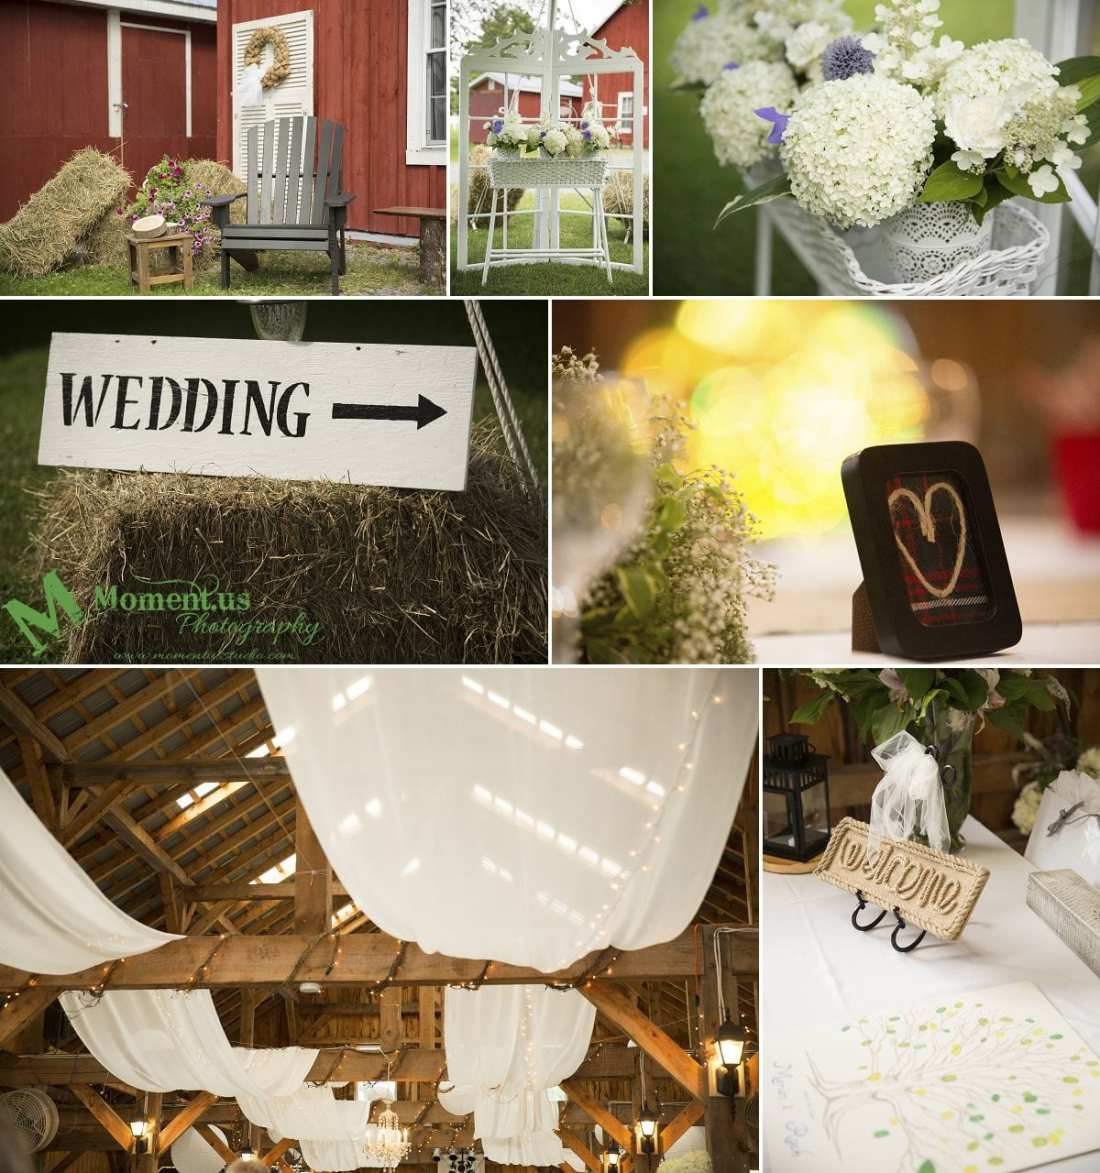 Williamstown Country Wedding - inside the barn